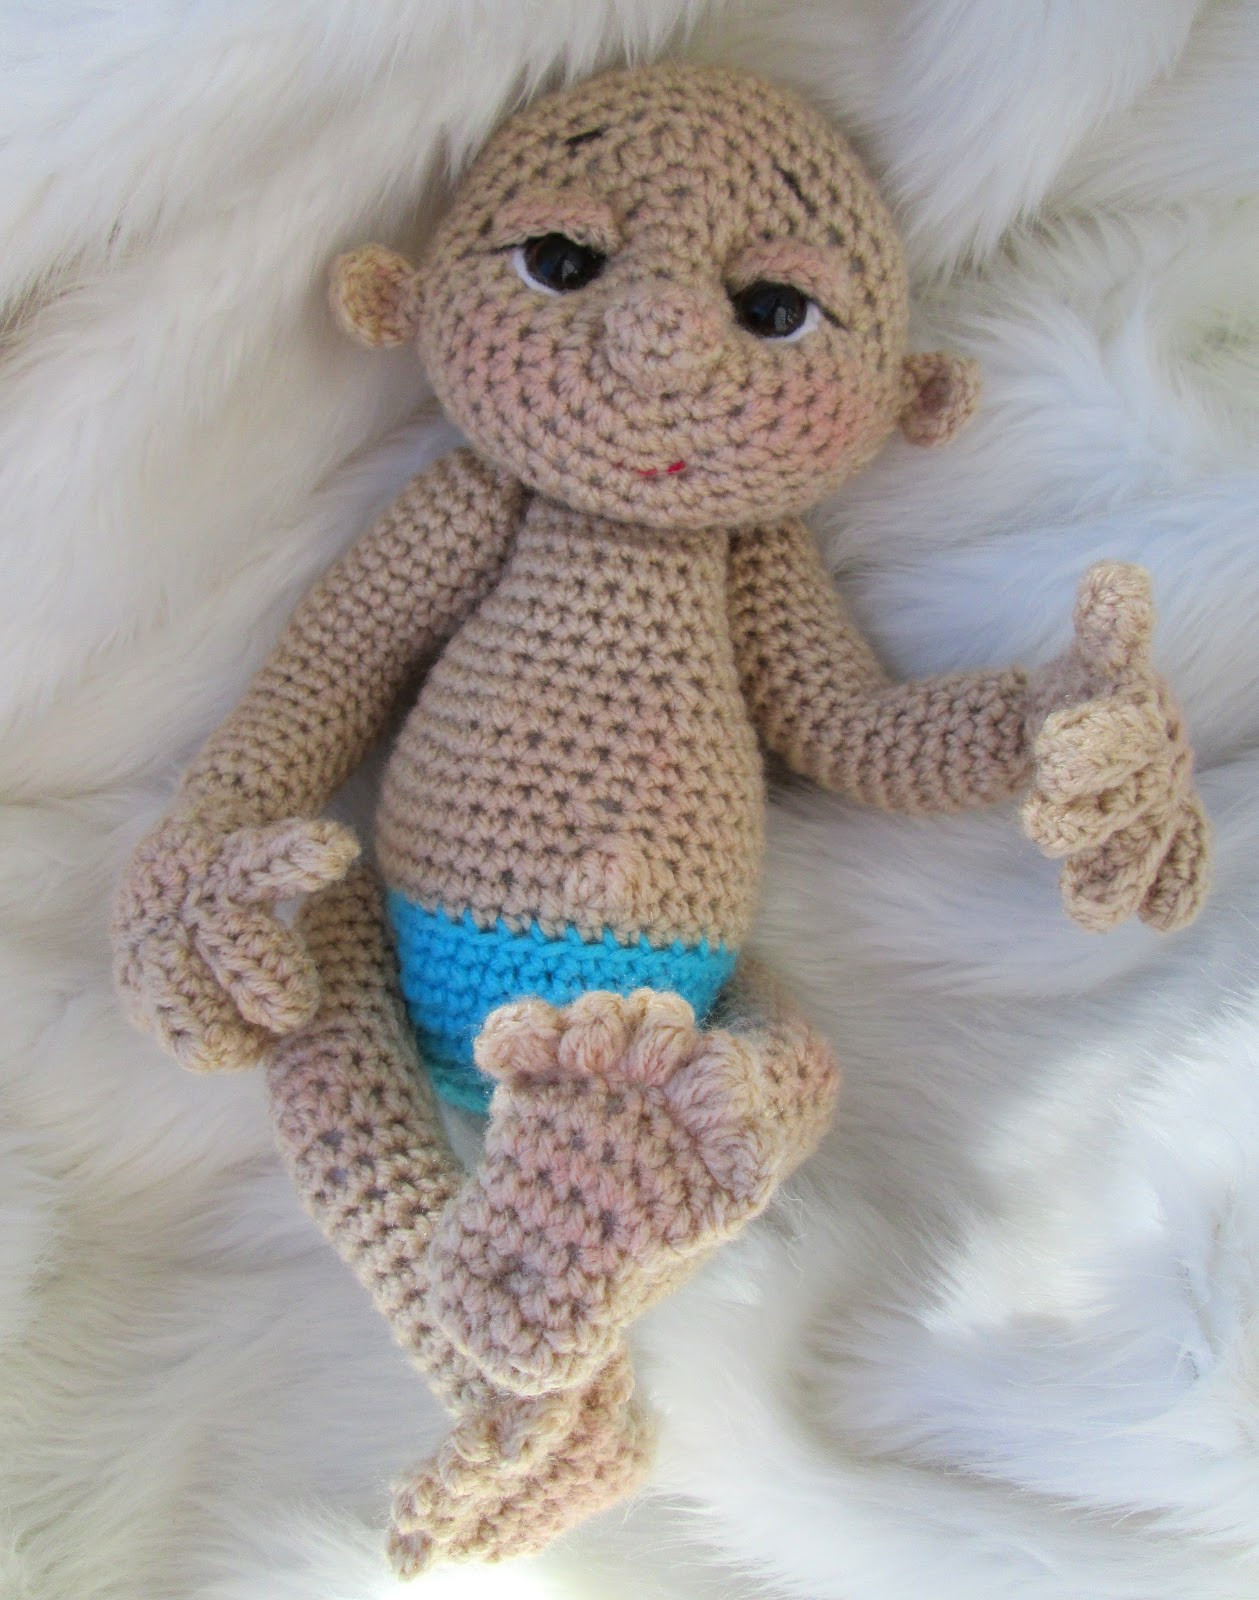 Crochet Doll Patterns New Teri S Blog Tutorials Jointing Needle Scultping Stitch Of Adorable 42 Ideas Crochet Doll Patterns